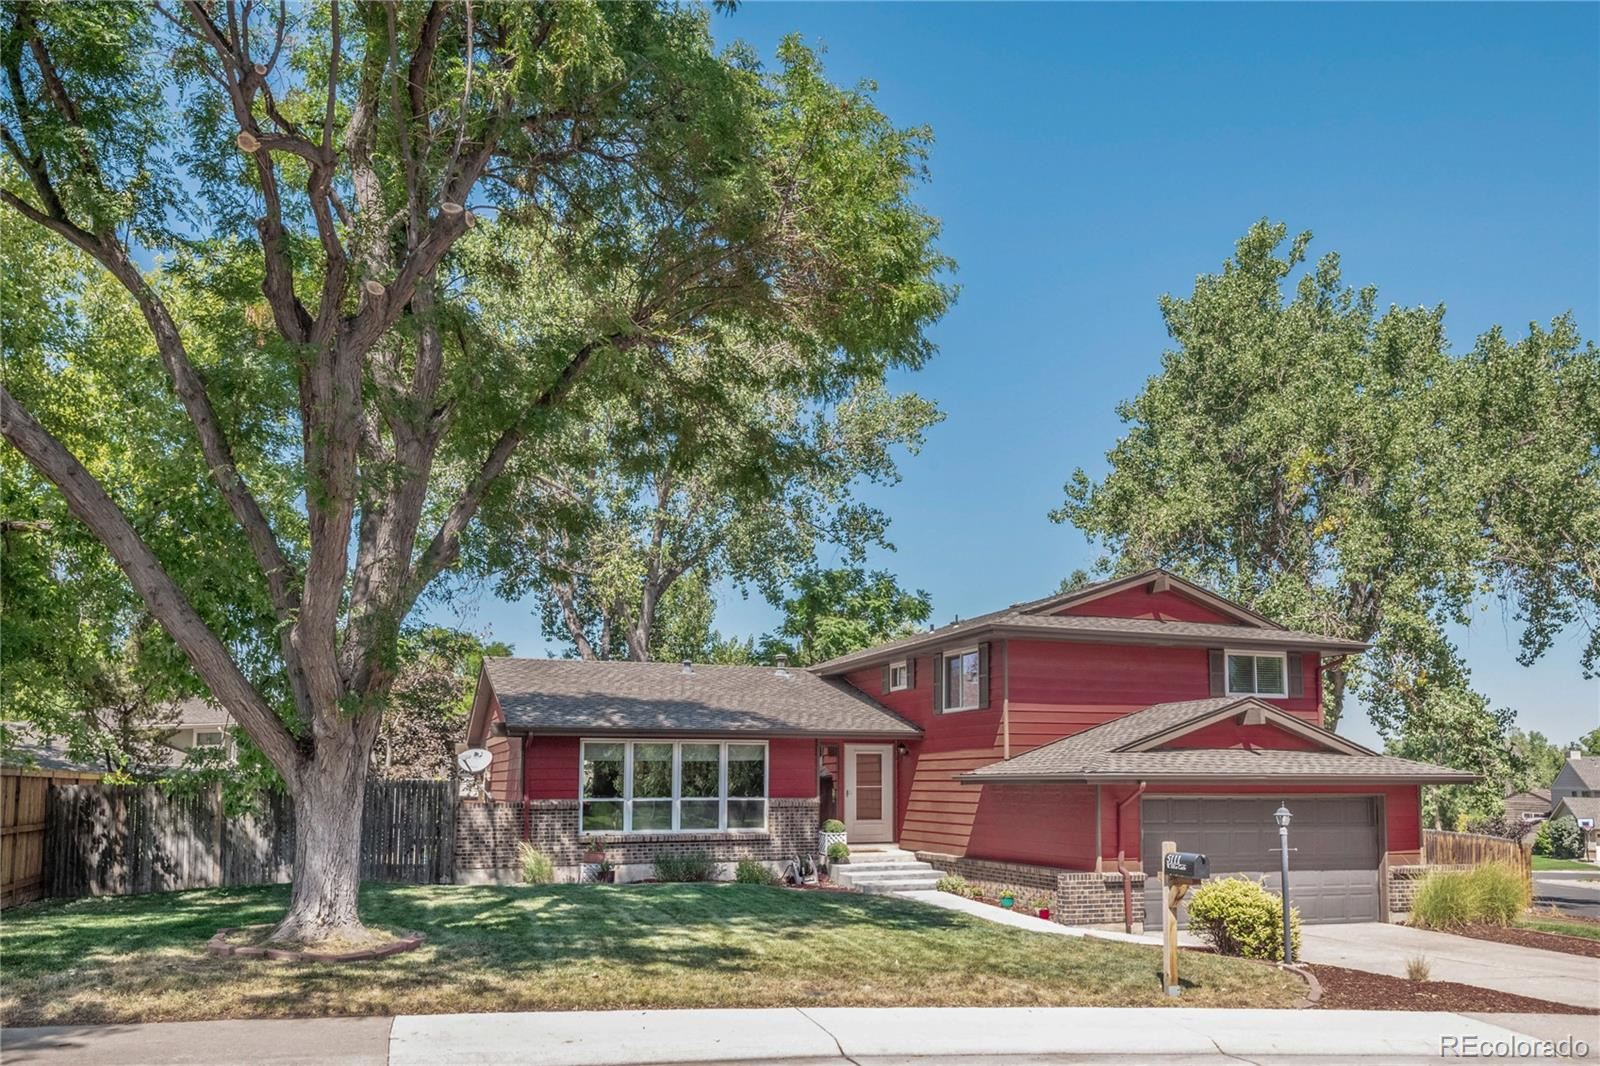 5111 W 101st Circle, Westminster, CO 80031 - #: 6649341